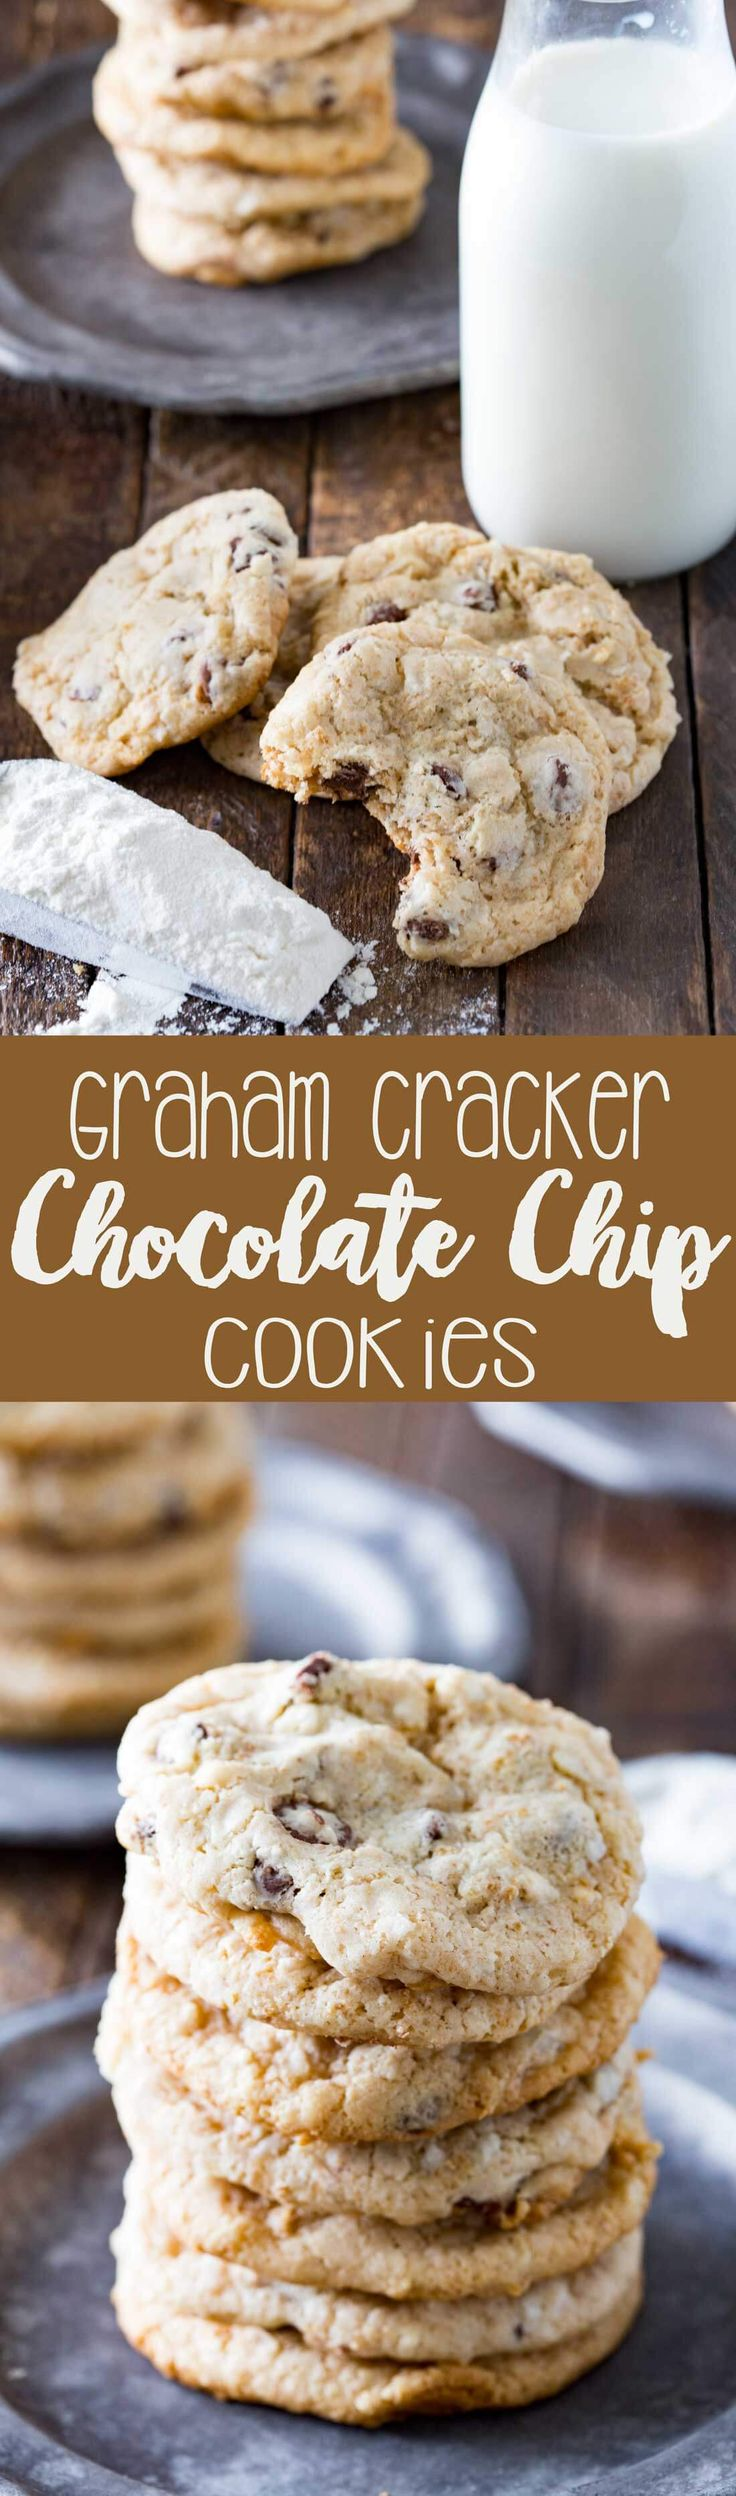 Easy, crispy outside, soft inside, these graham cracker chocolate chip cookies are the best